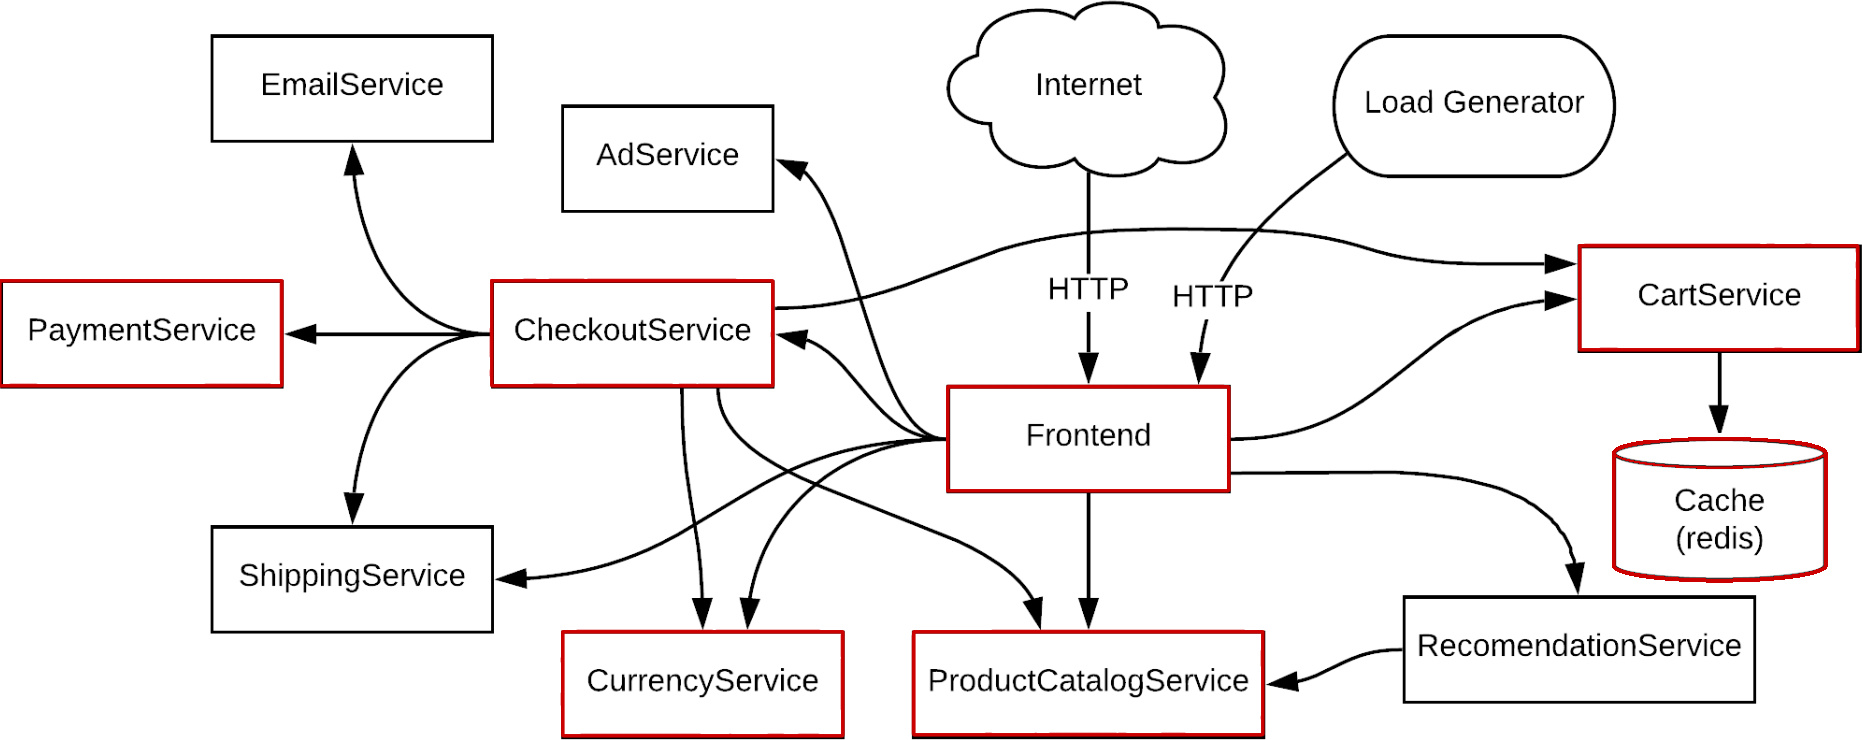 Application map of Online Boutique with the critical path highlighted